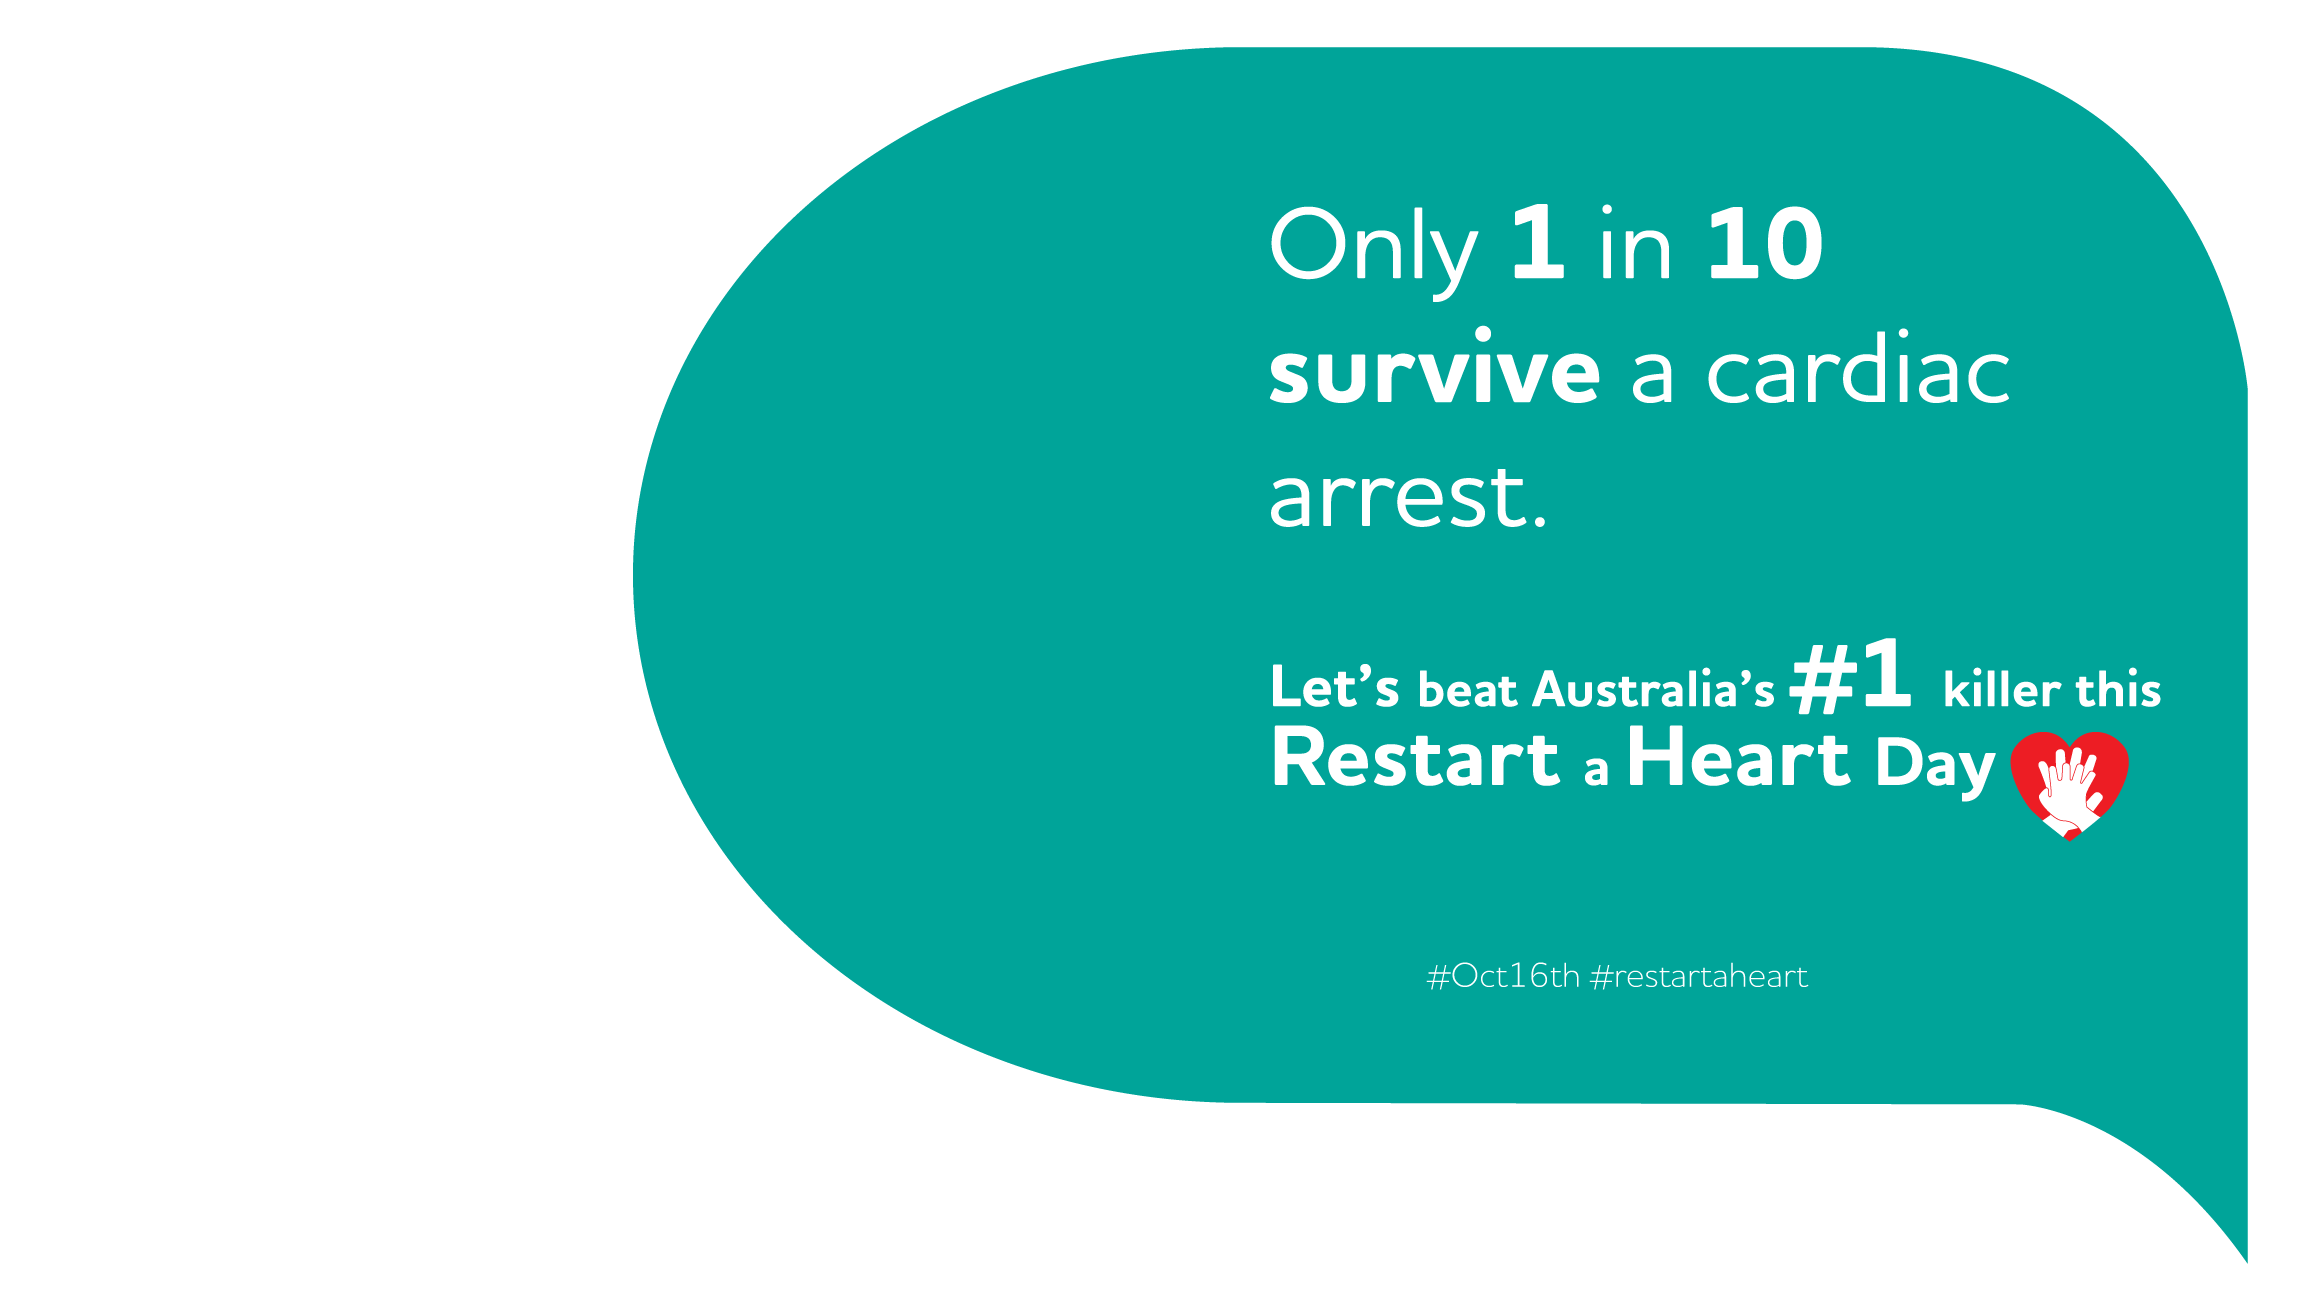 Image of the Restart a Heart Day 2019 advert